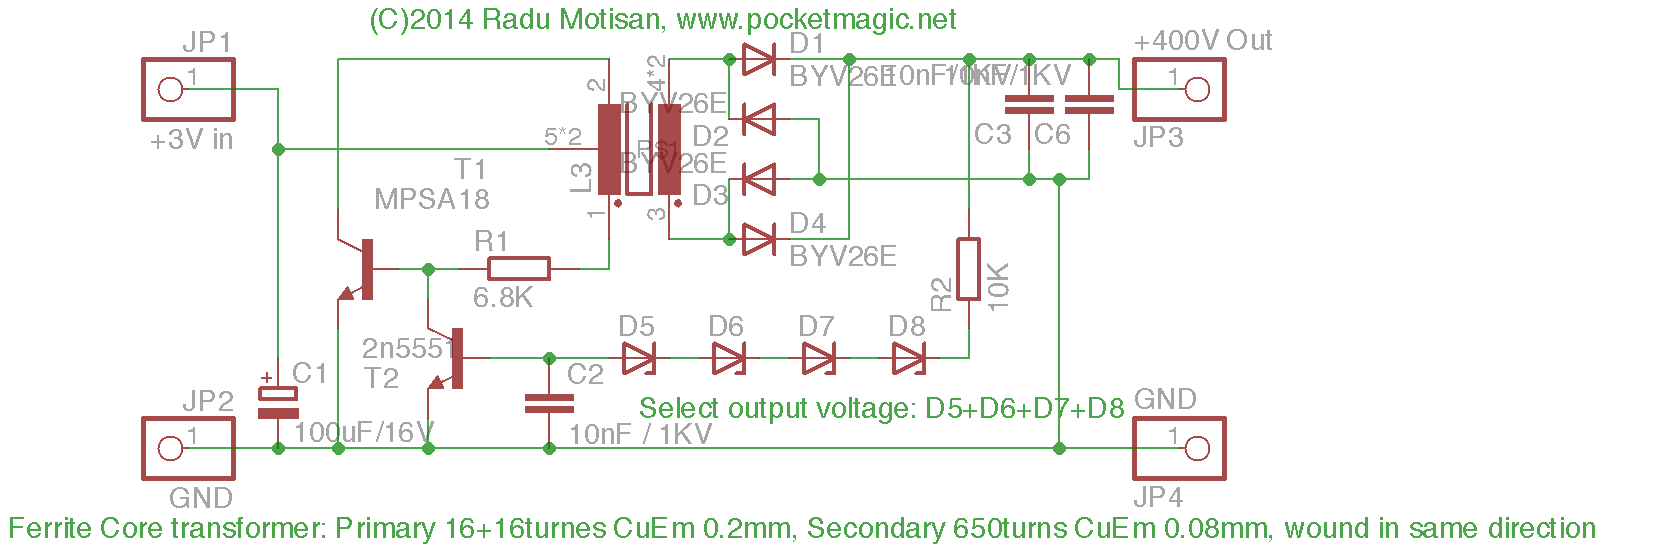 inverter_400V_sch 3v to 400v regulated inverter for geiger counters pocketmagic 400v to 230v transformer wiring diagram at crackthecode.co